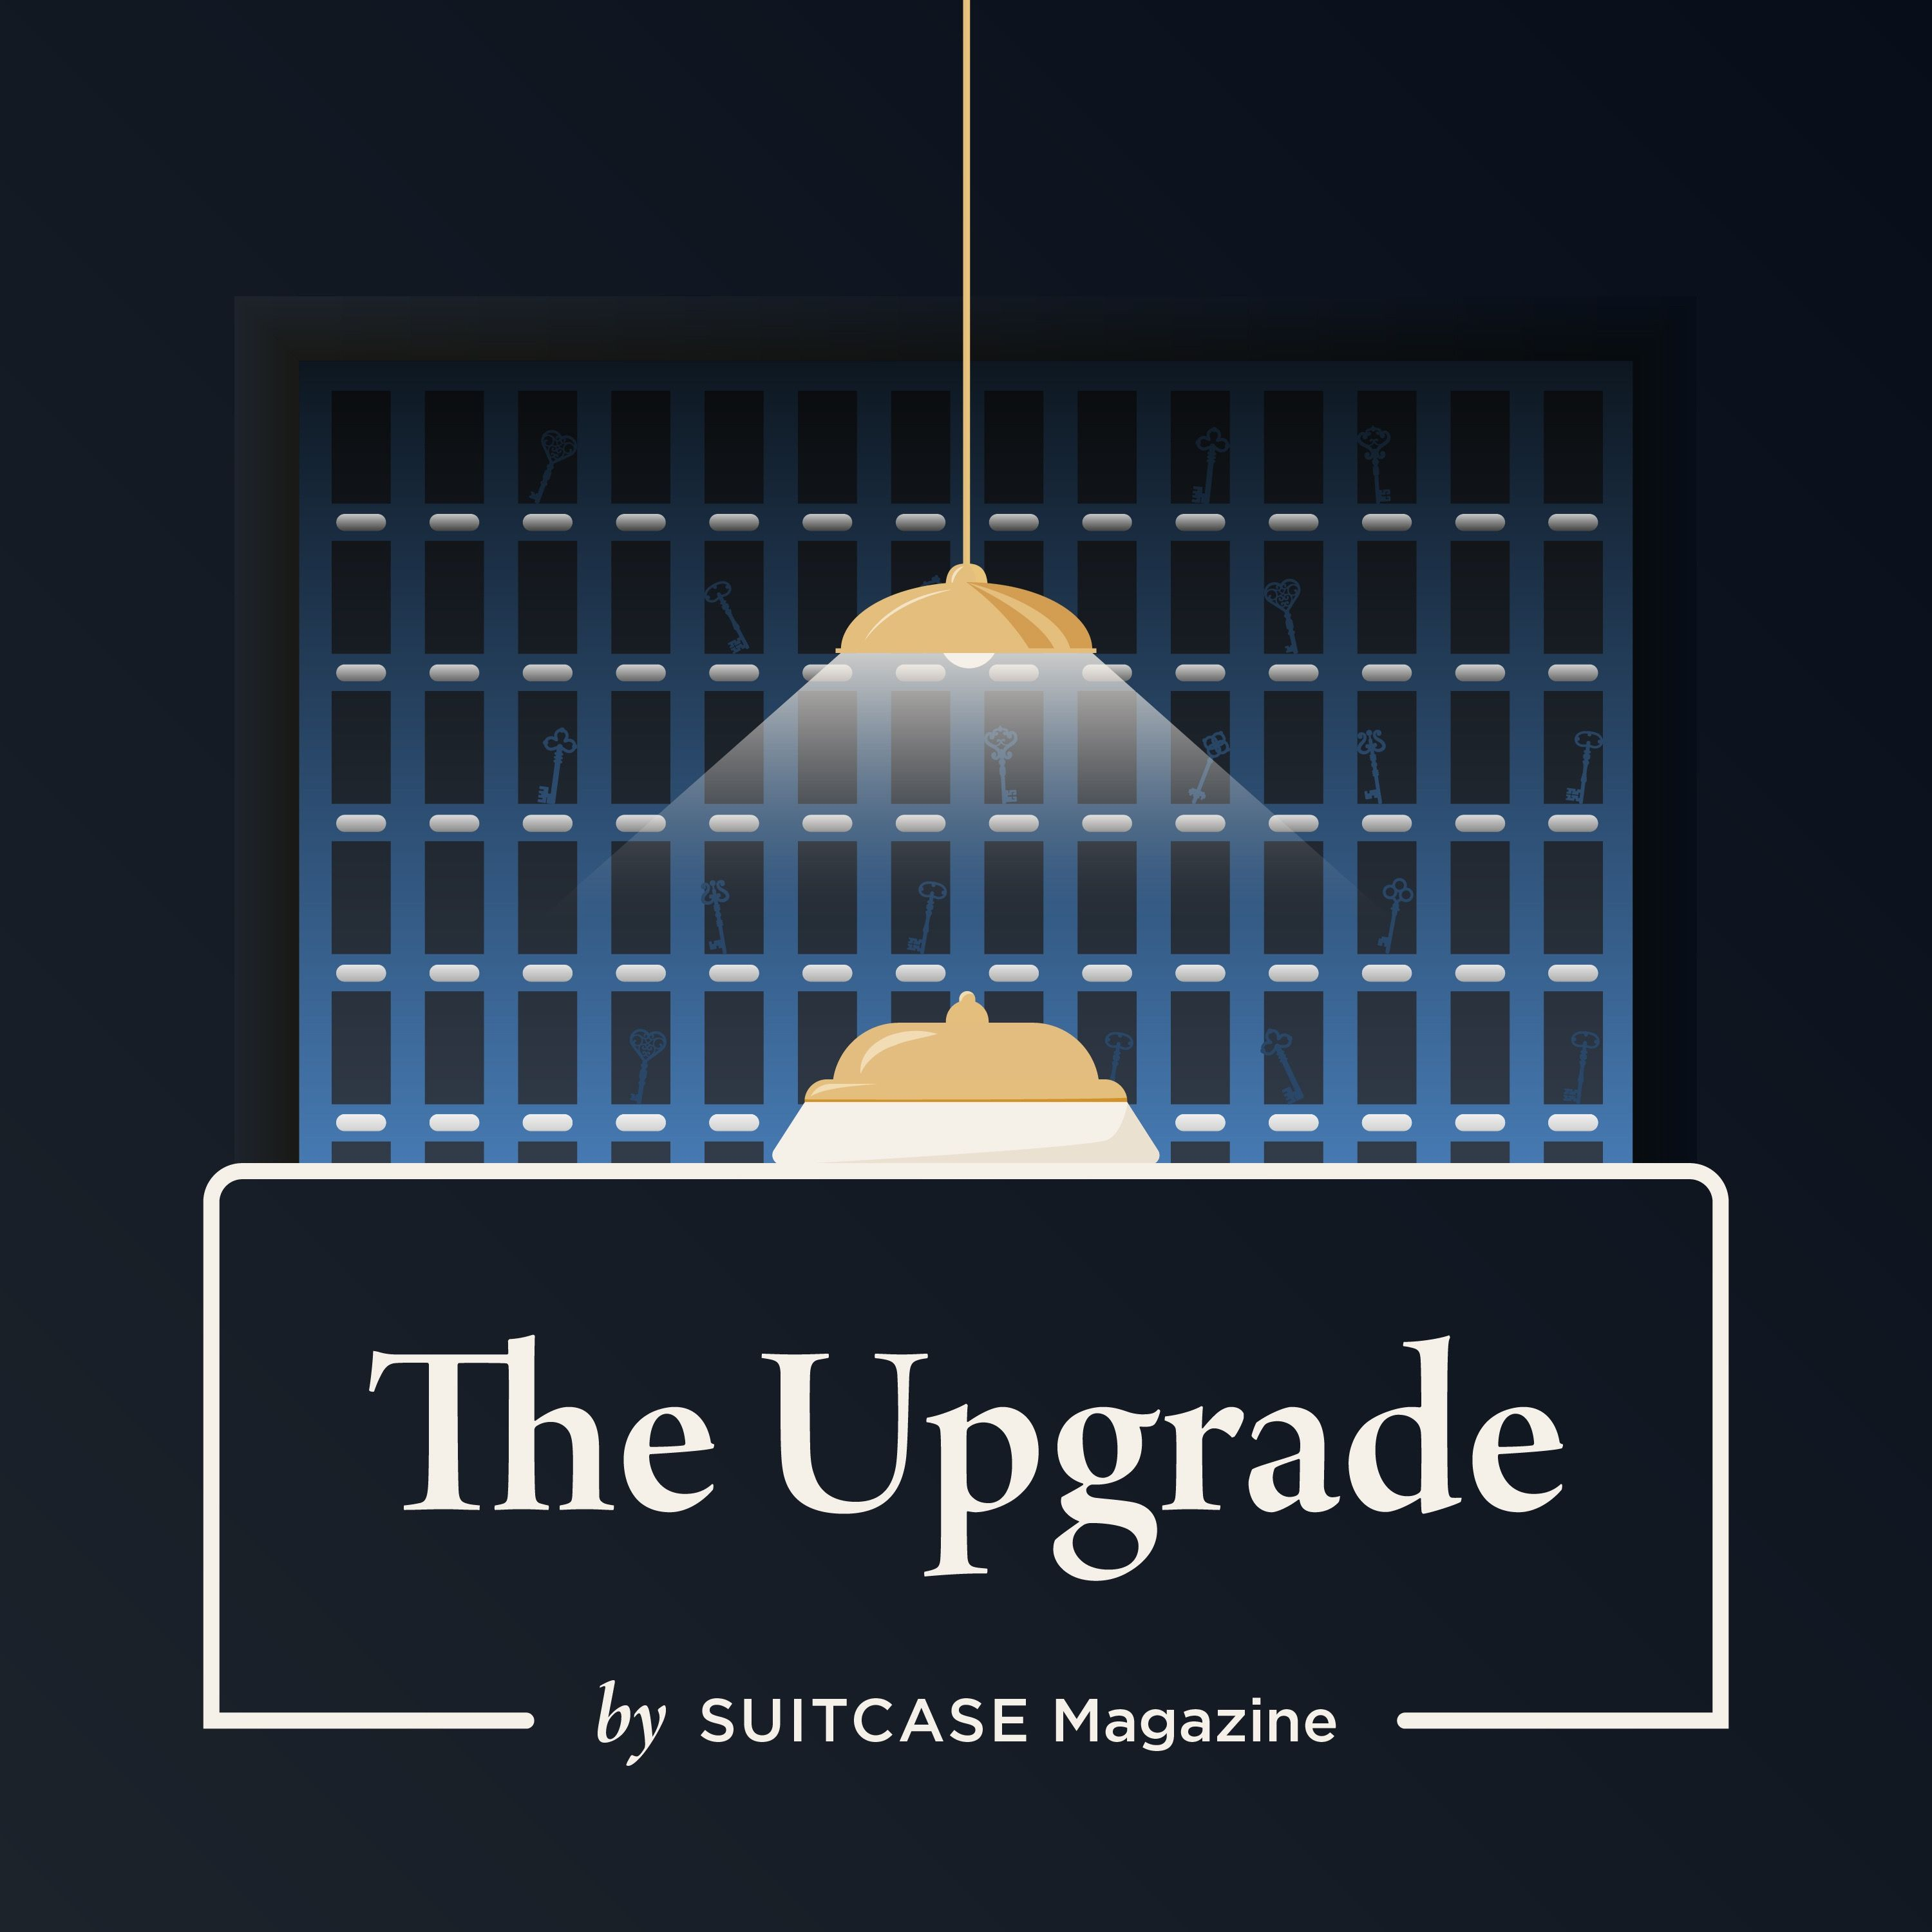 The Upgrade by SUITCASE Magazine